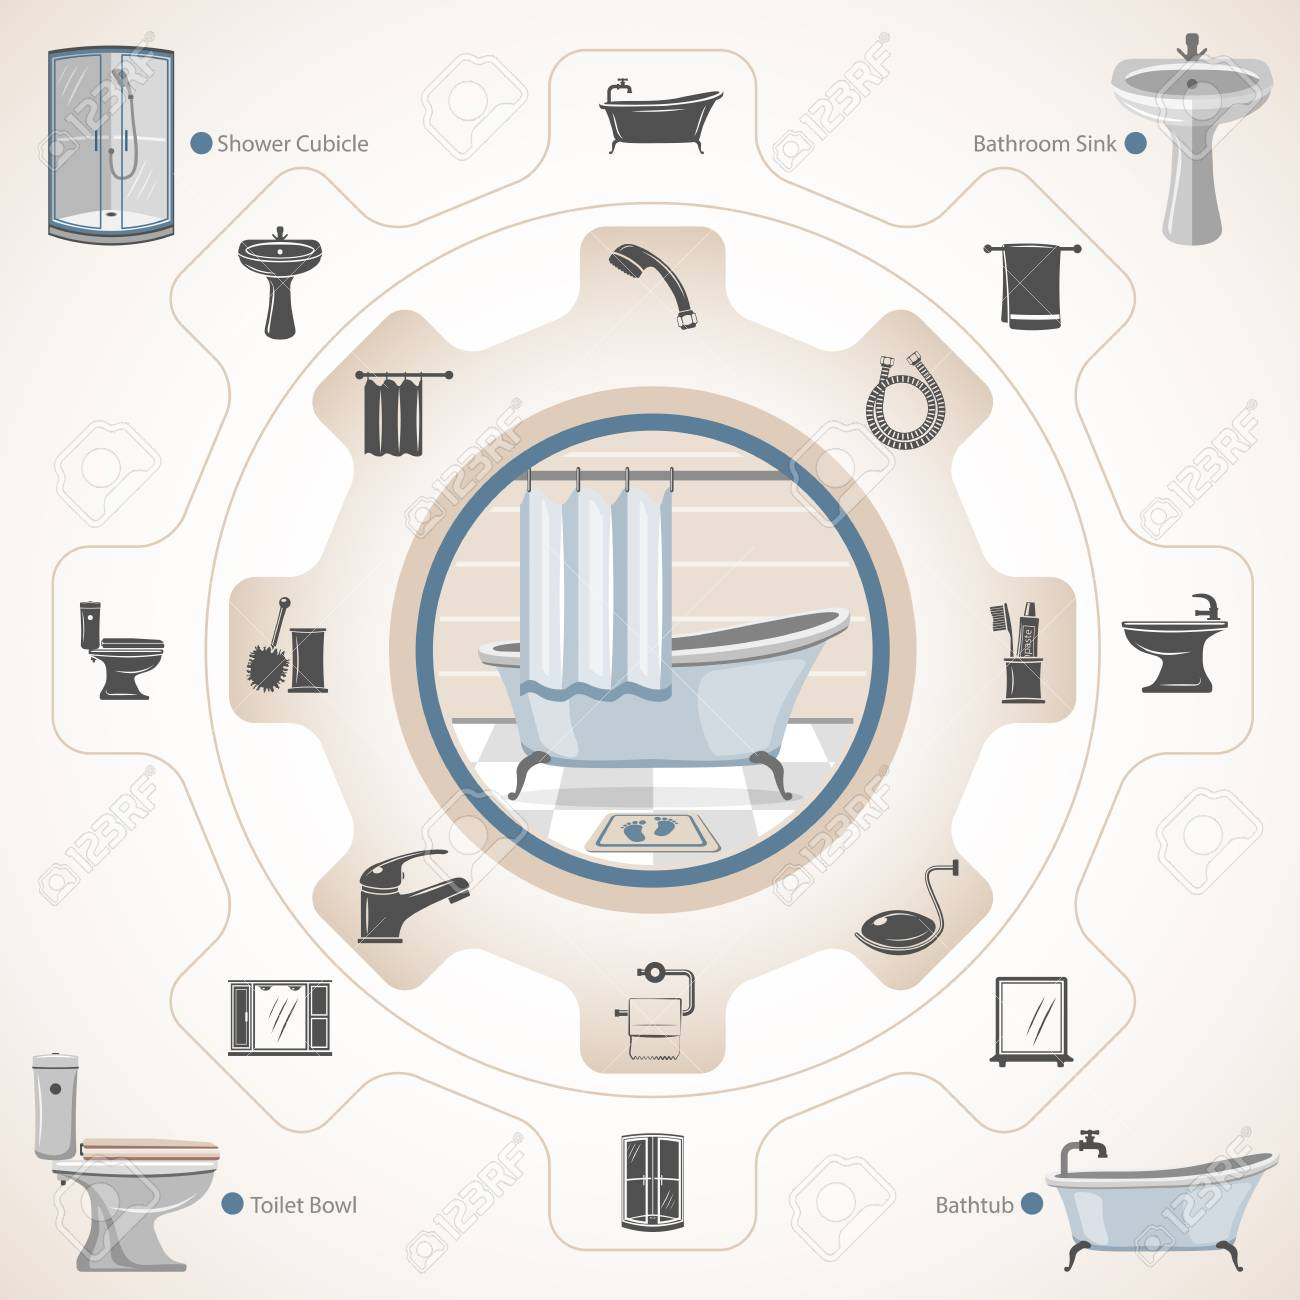 Bathroom Equipment And Accessories Royalty Free Cliparts, Vectors ...